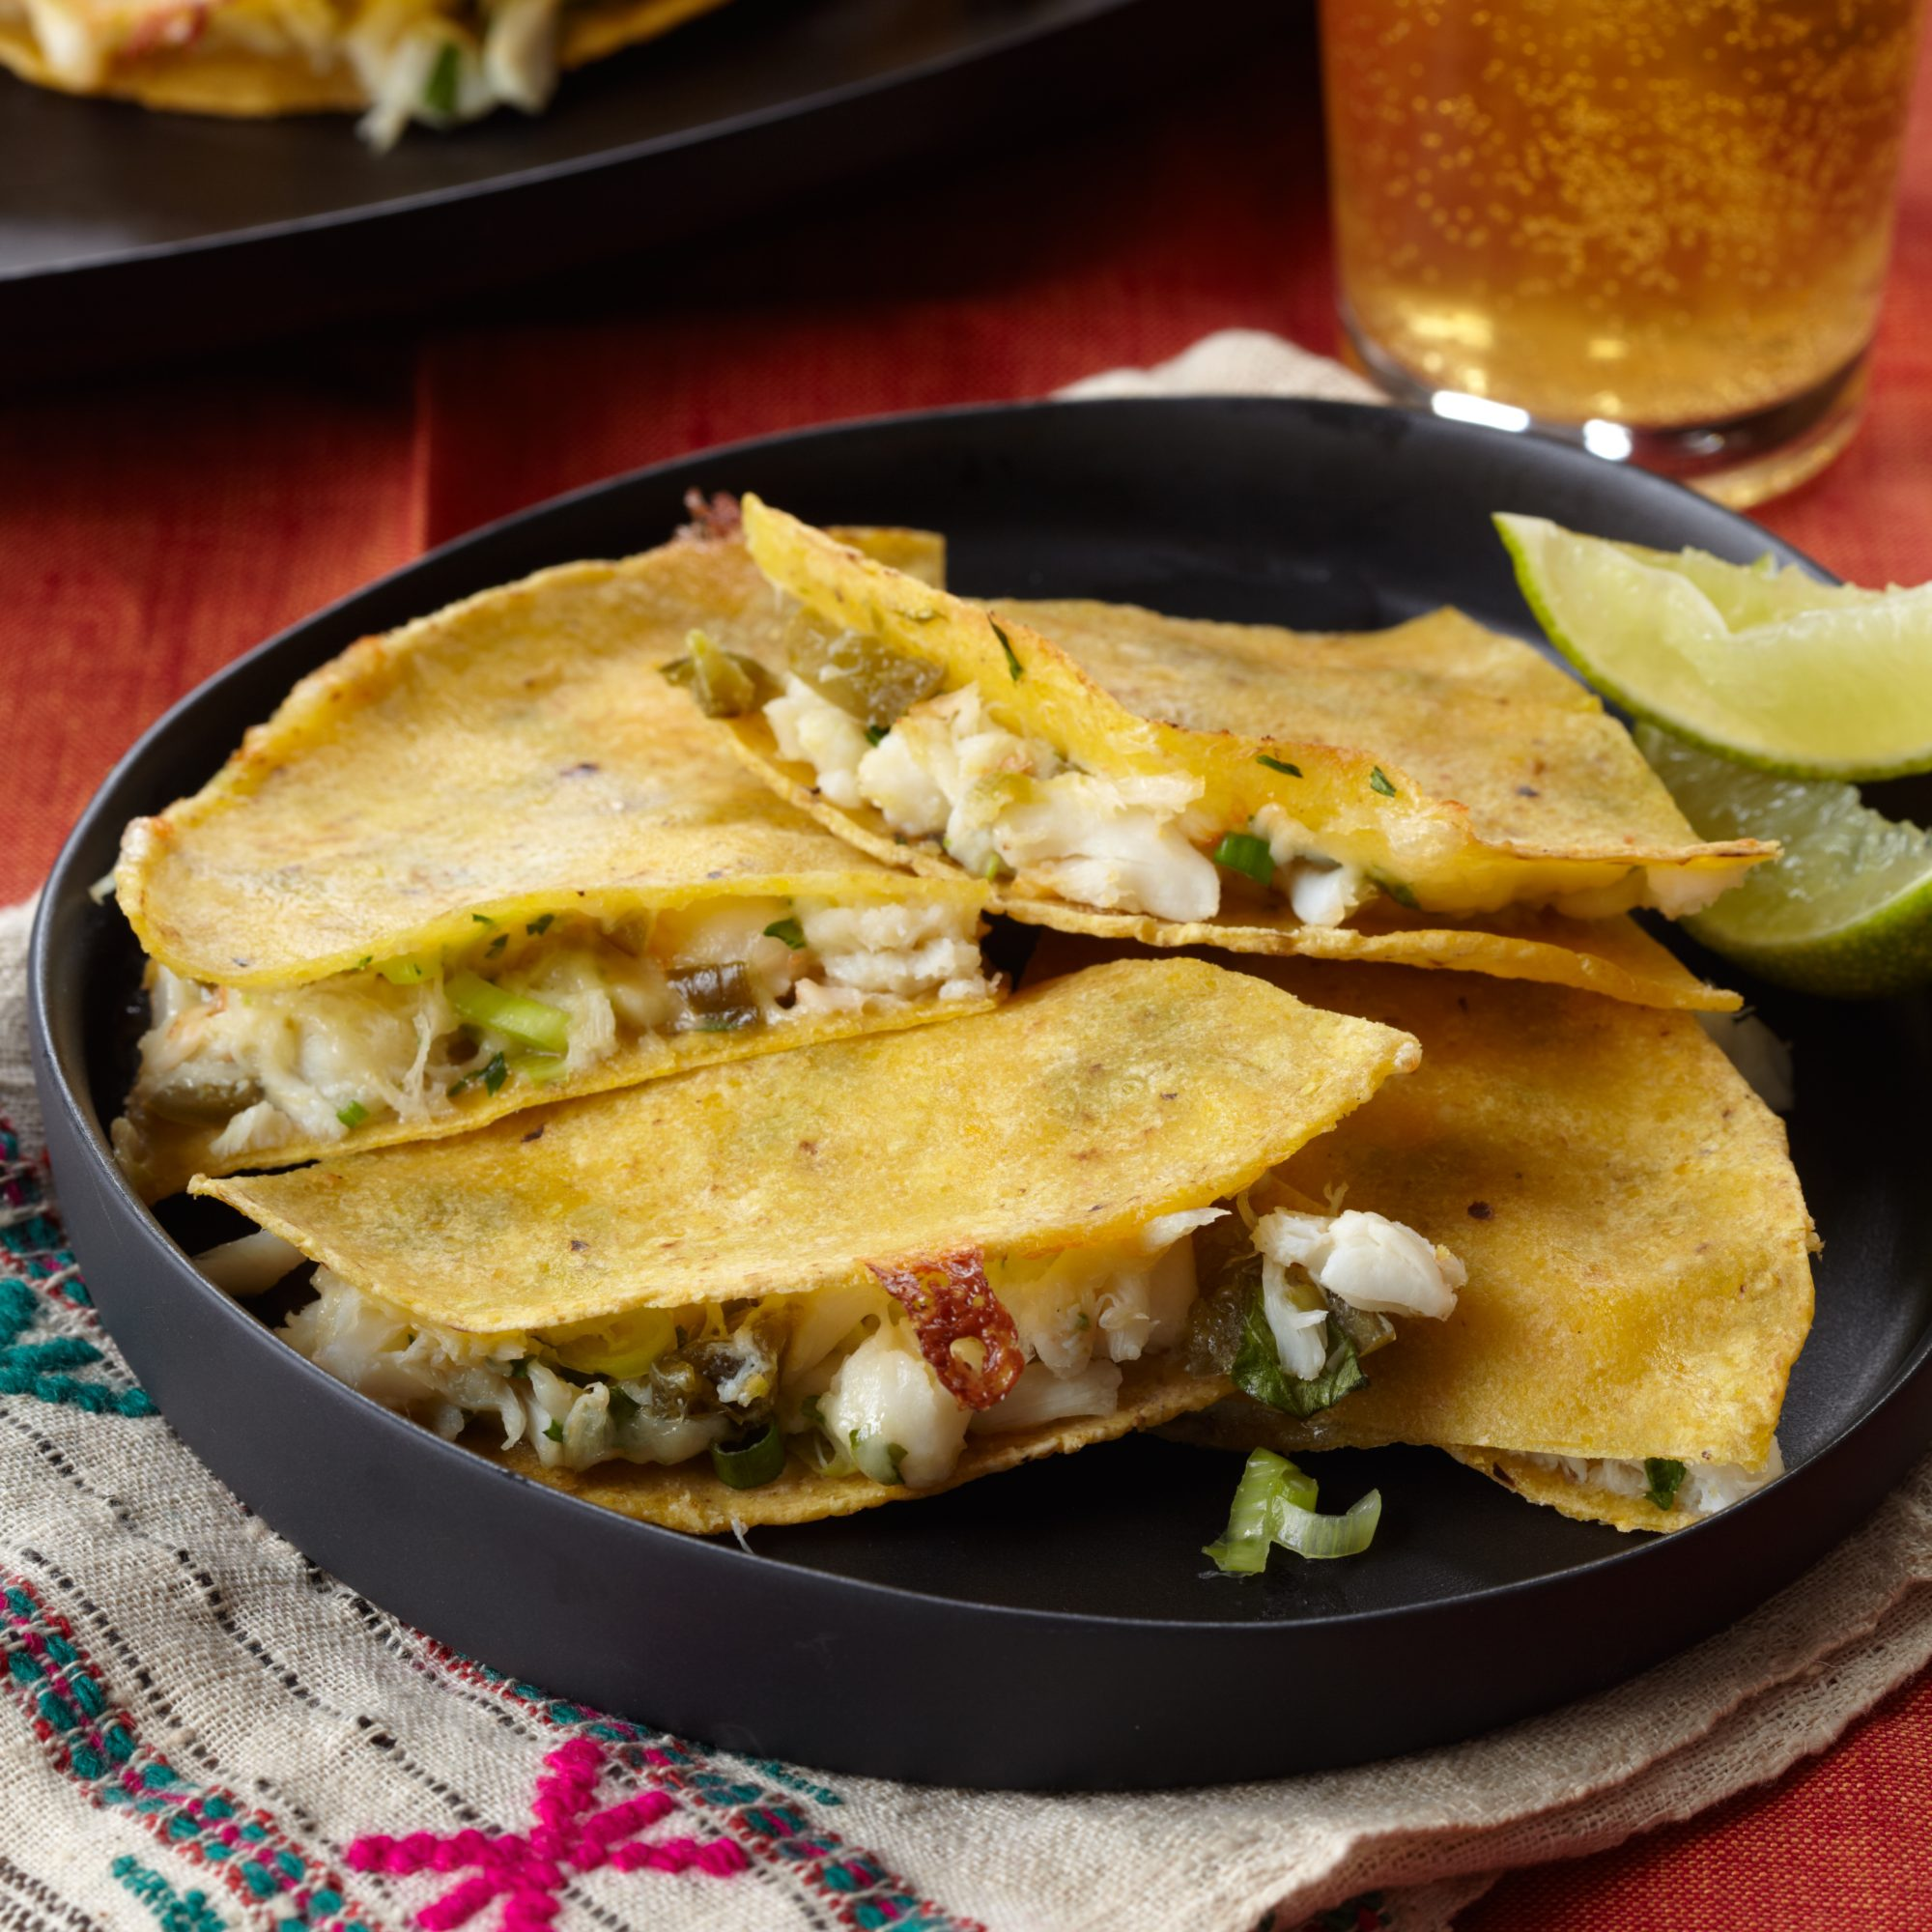 201010-r-crab-quesadillas.jpg